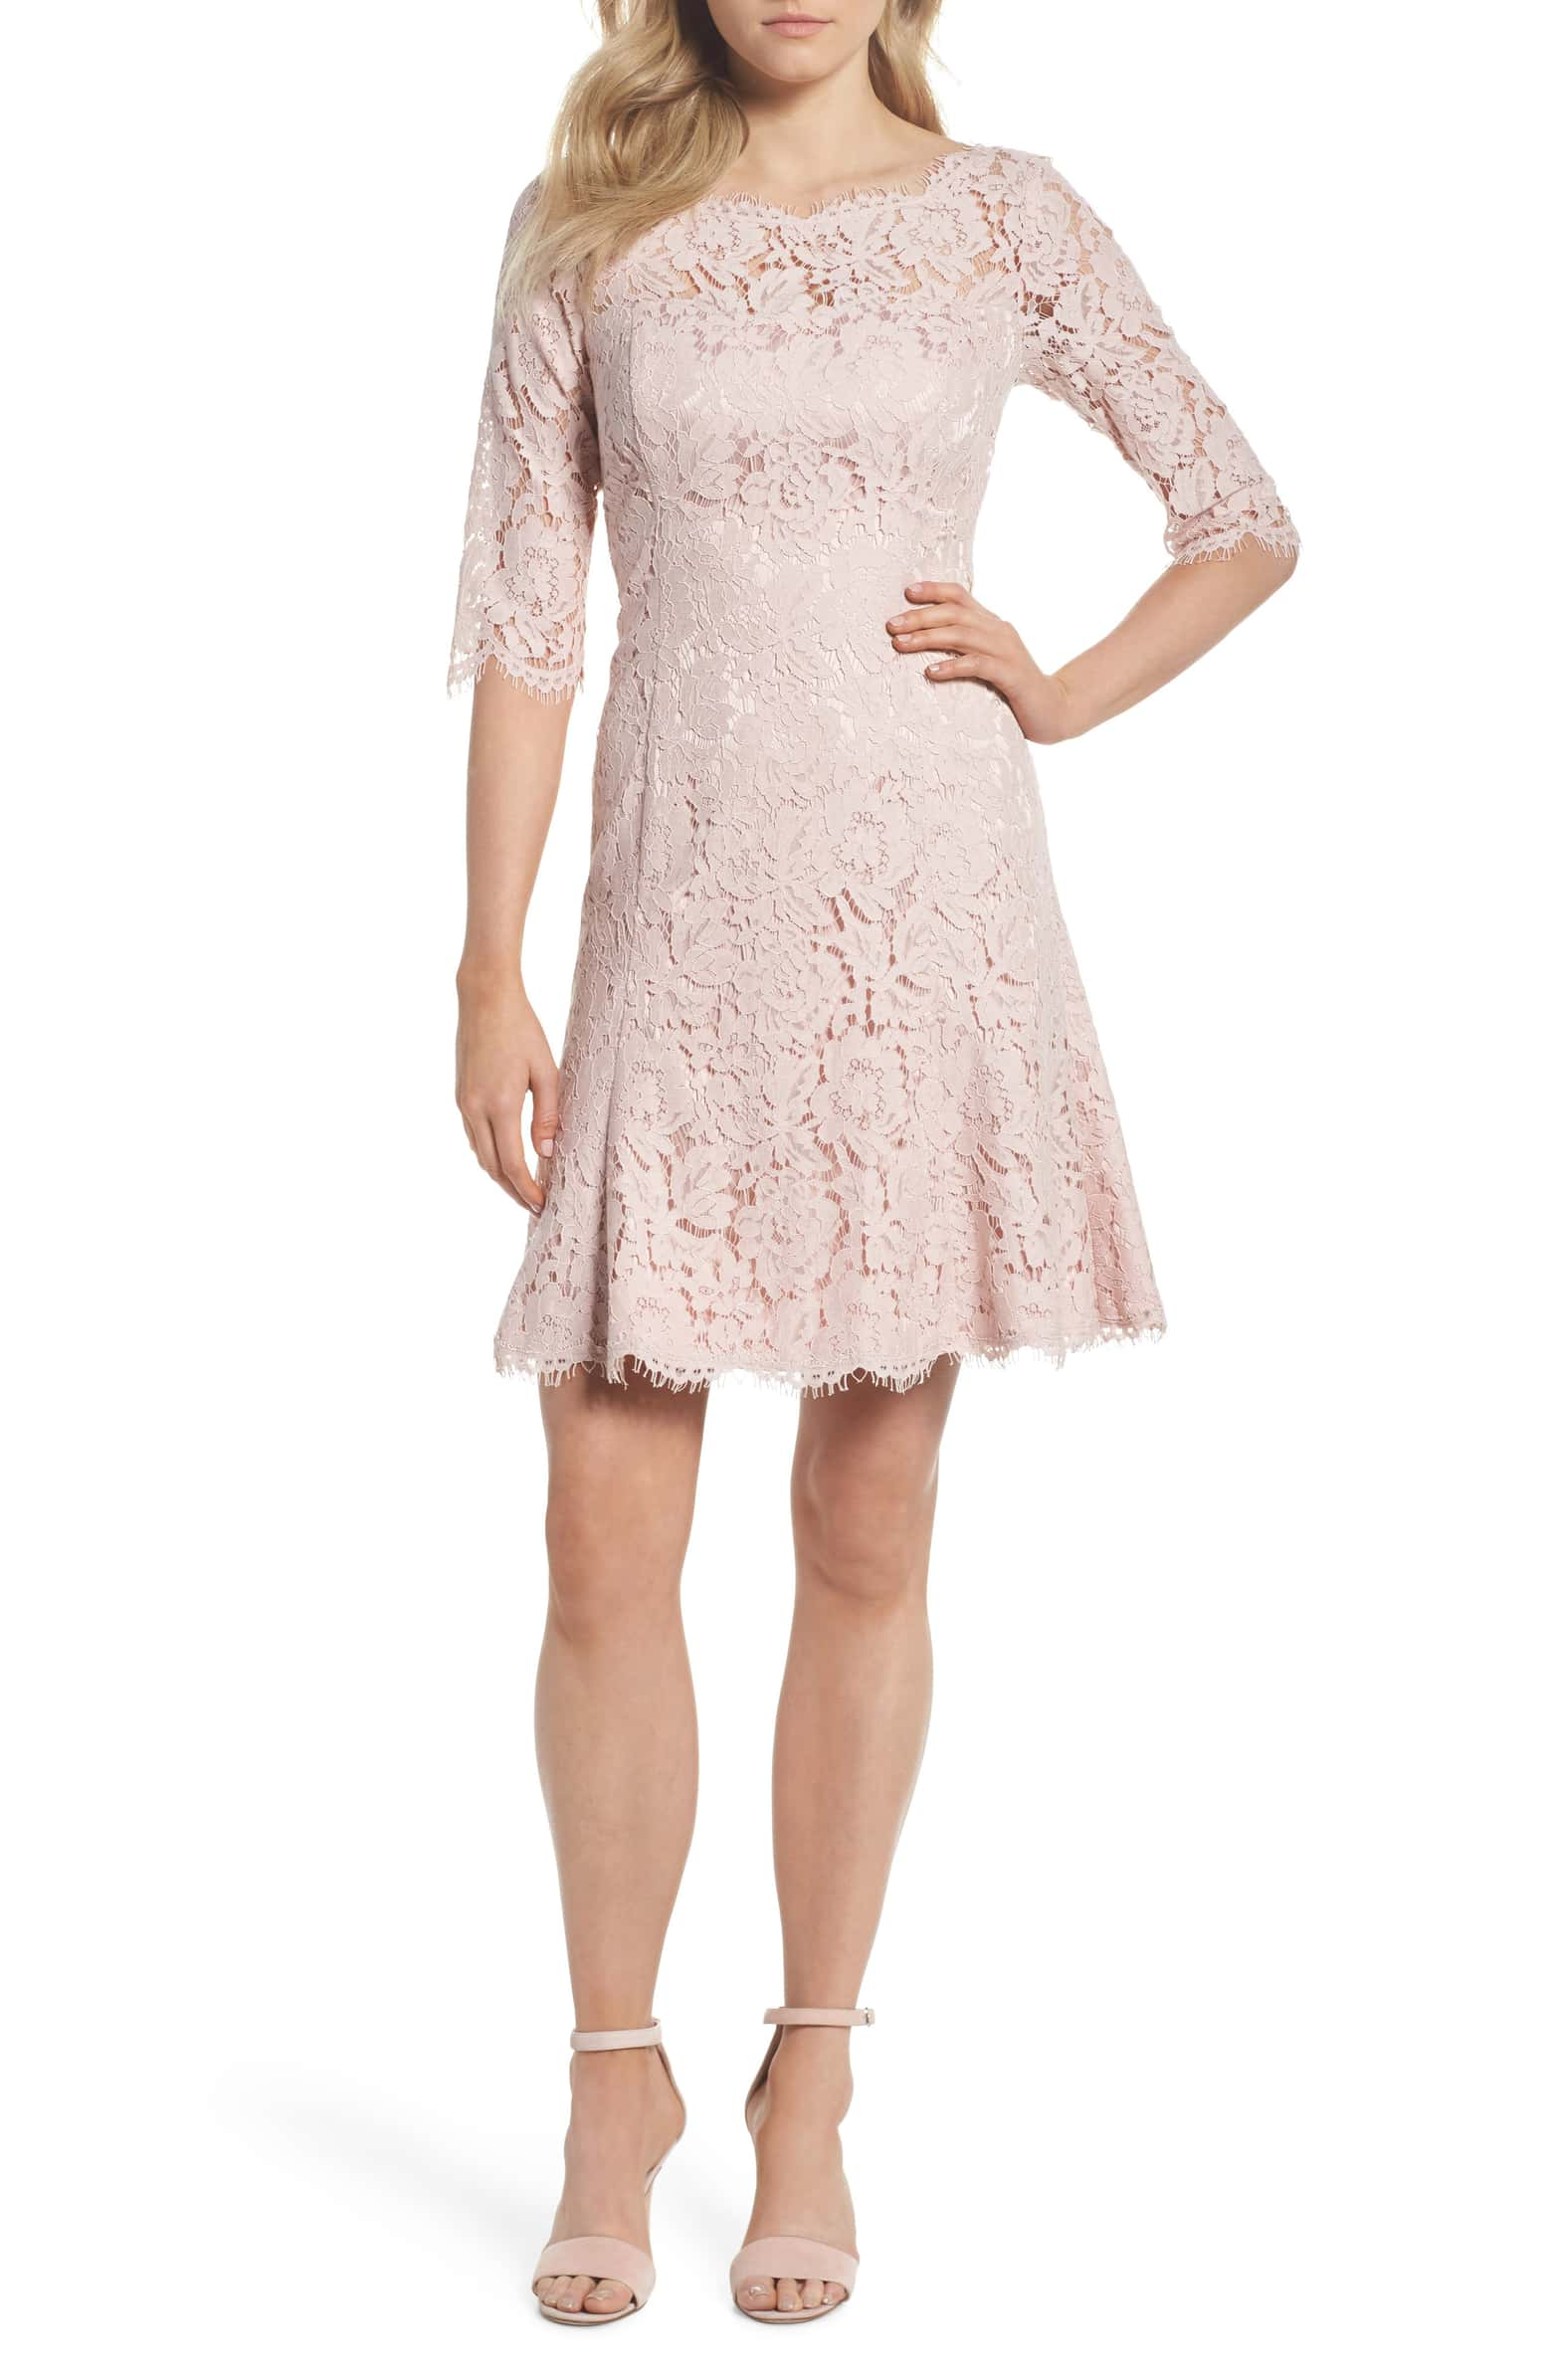 eliza lace cocktail dress.jpg